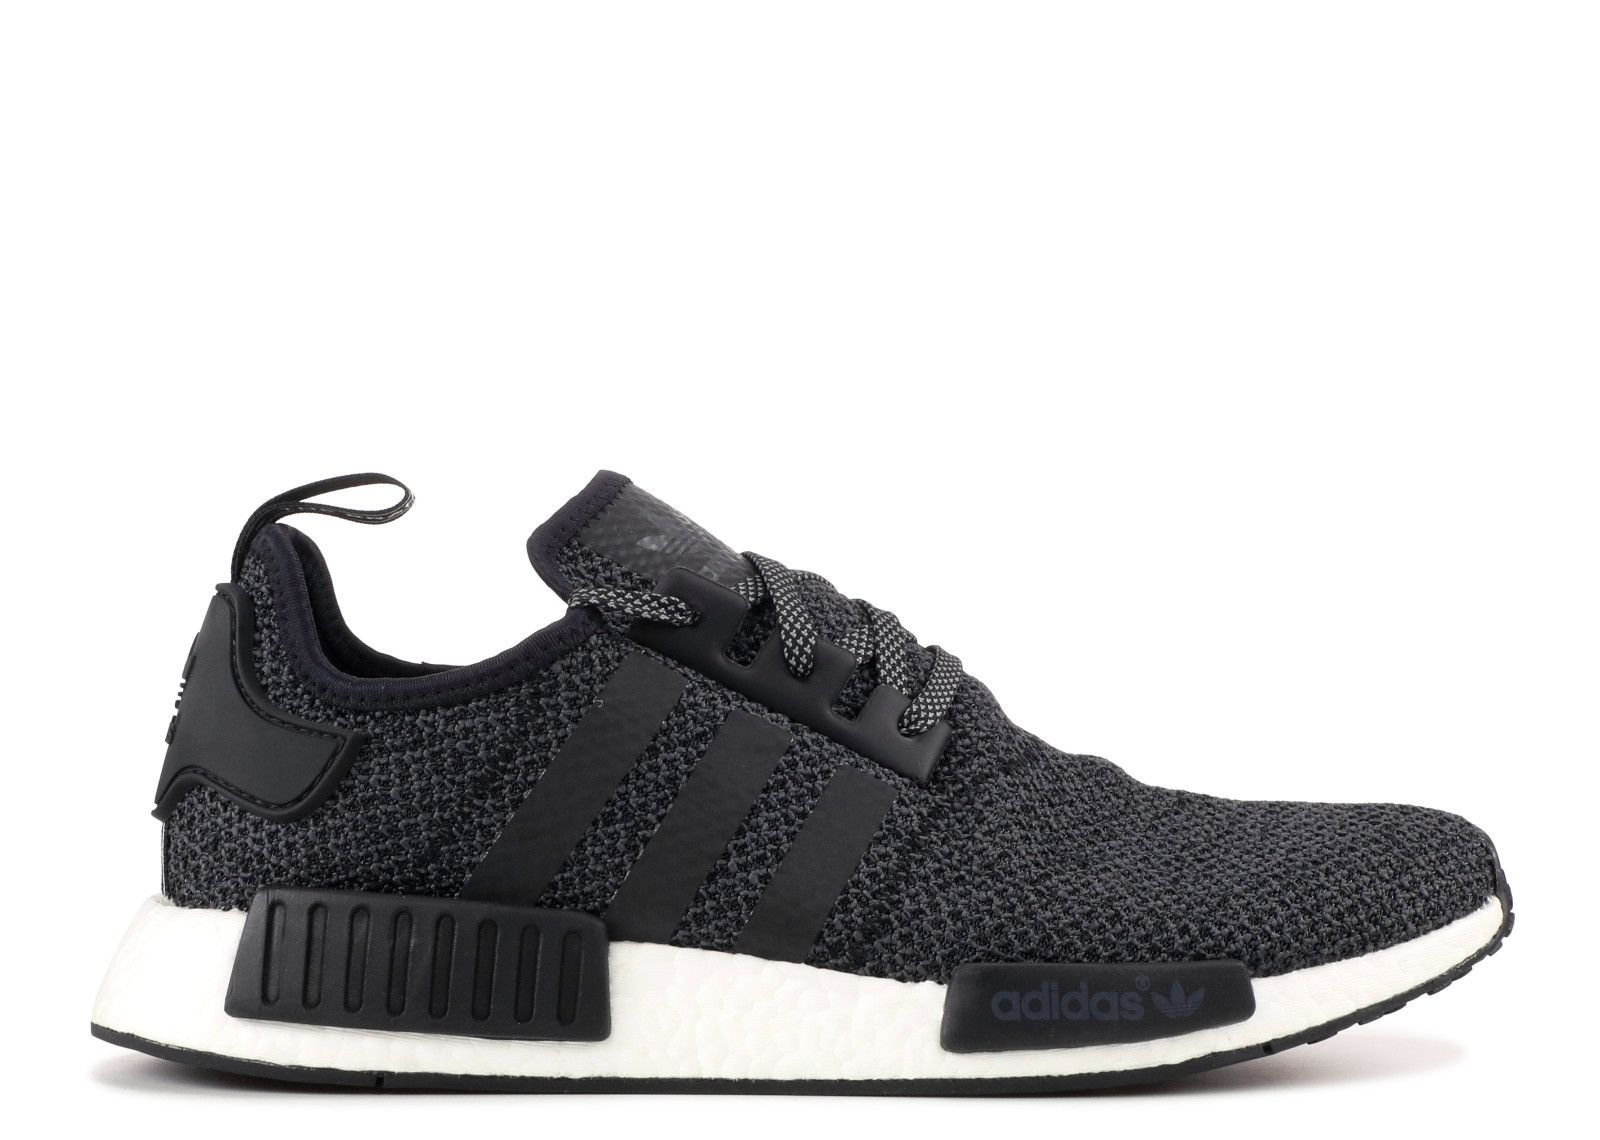 97577cc10c762 nmd r1 Types Of Shoes